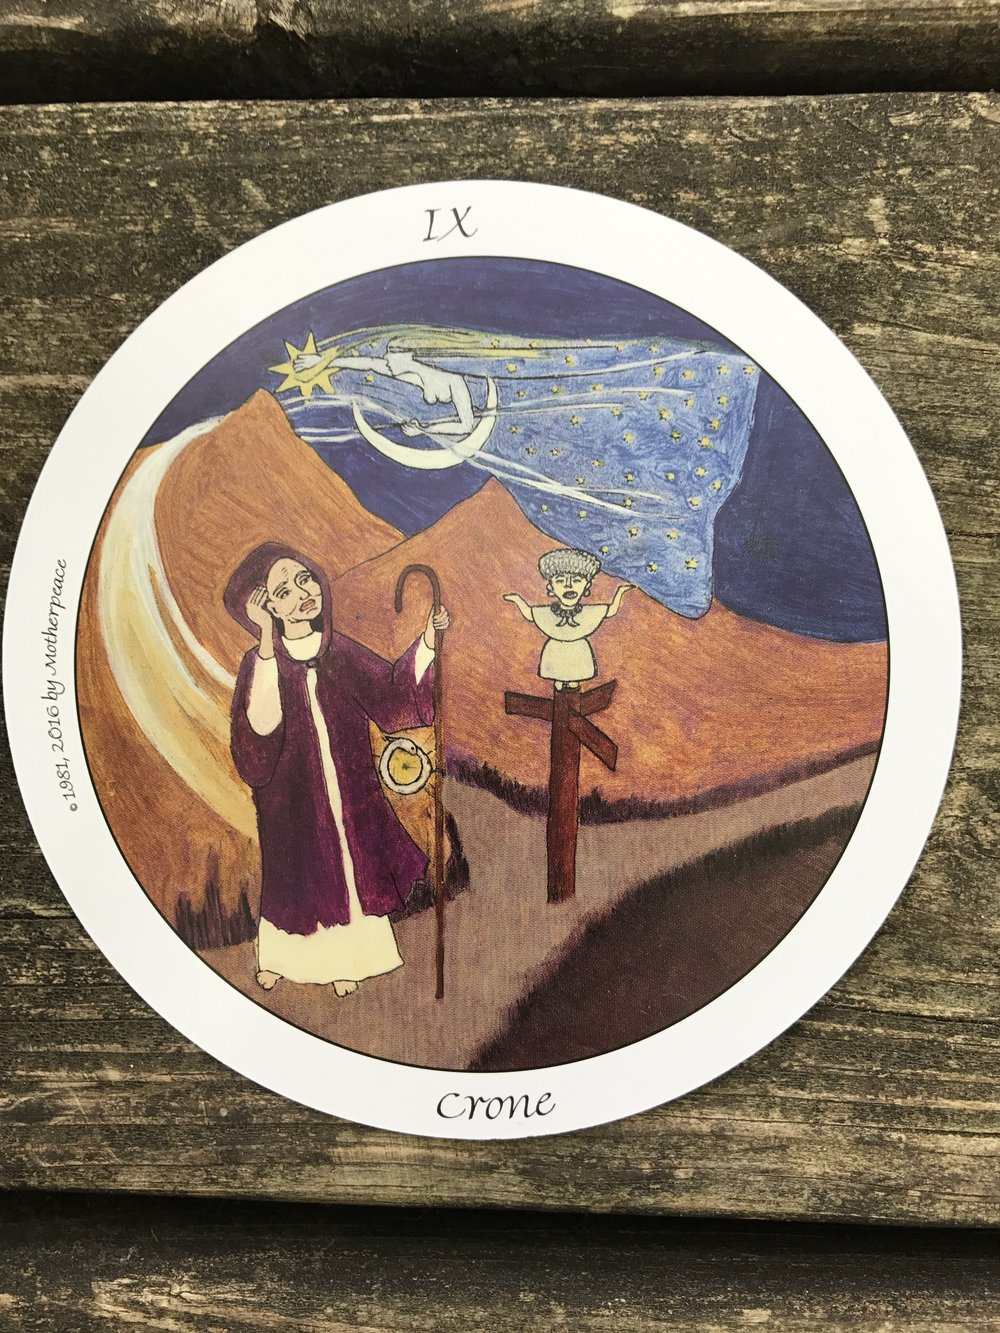 The Crone from Motherpeace